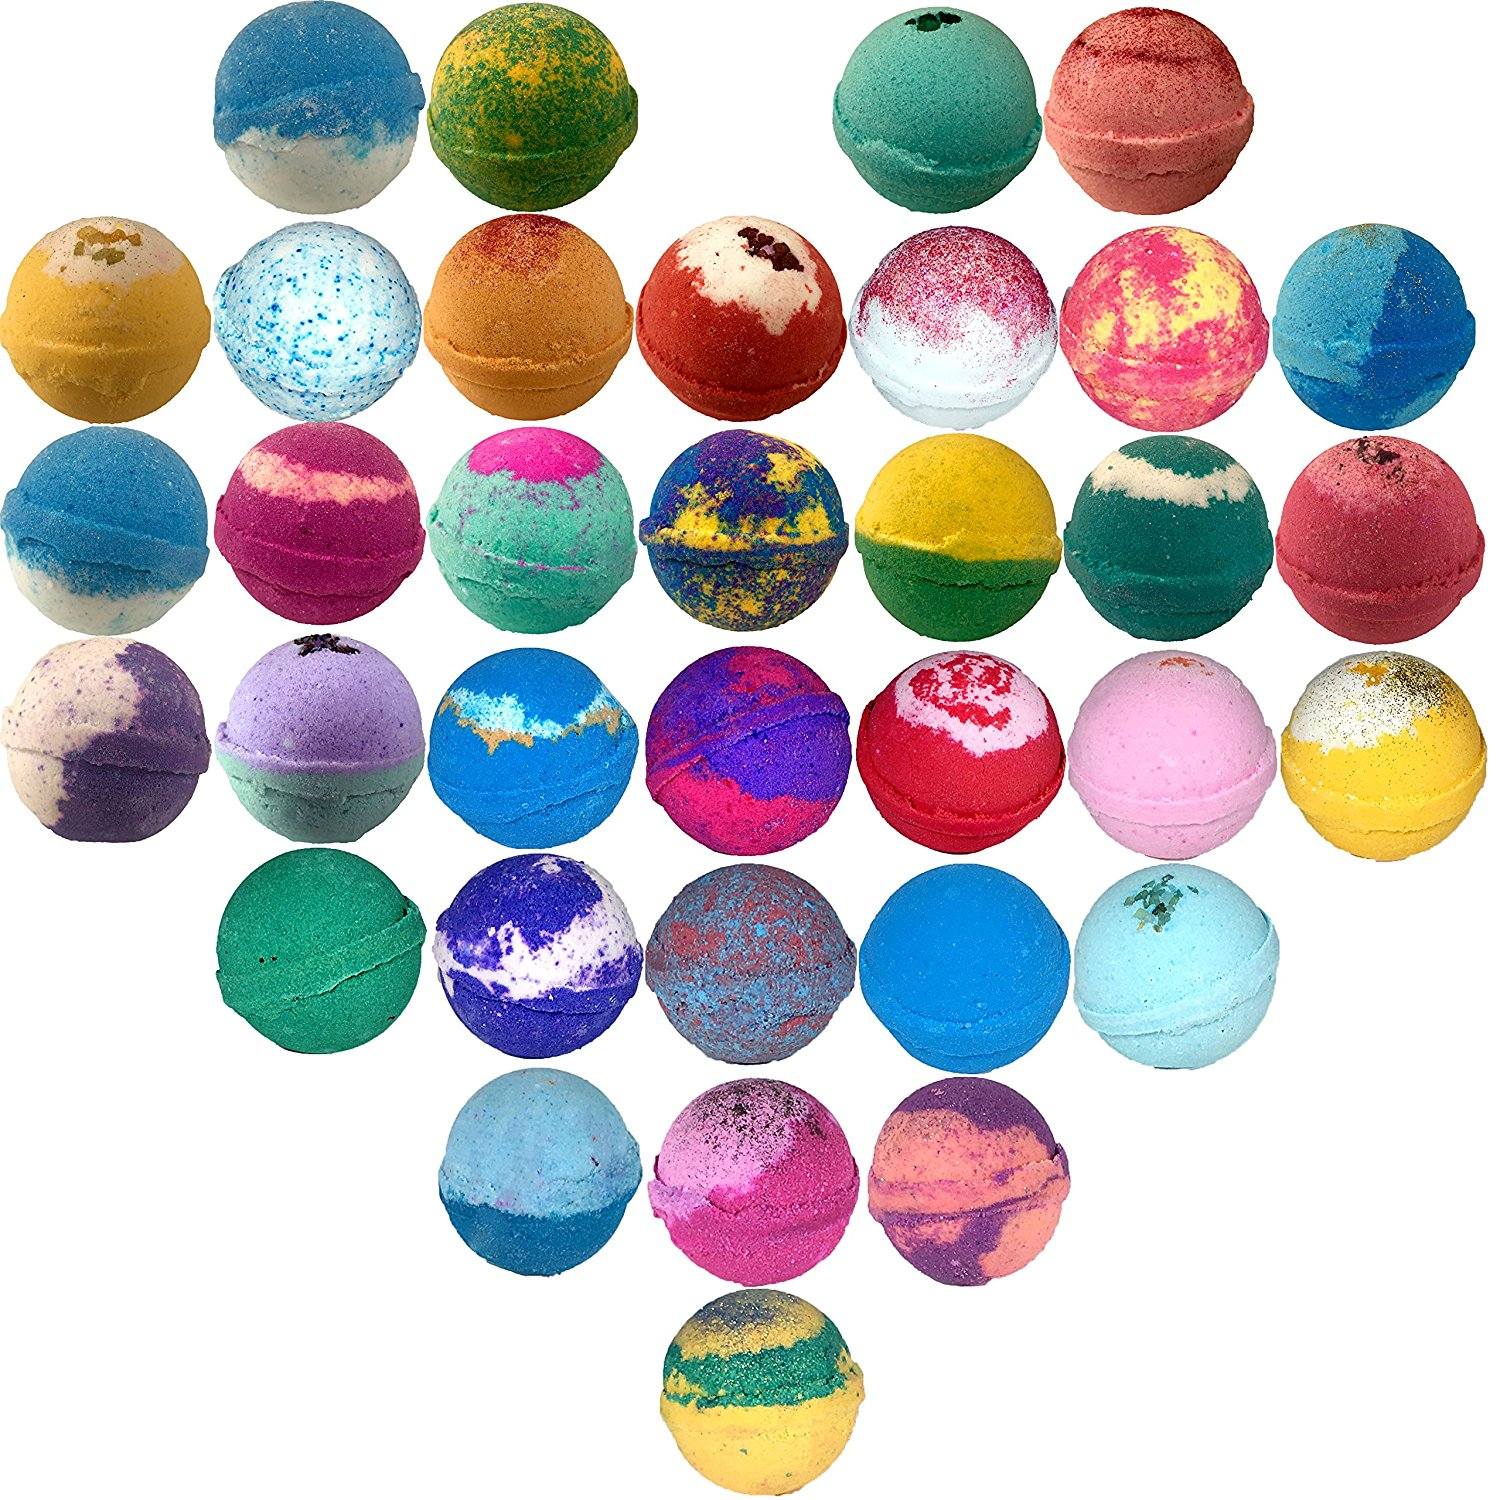 how to get color swirls in bath bombs